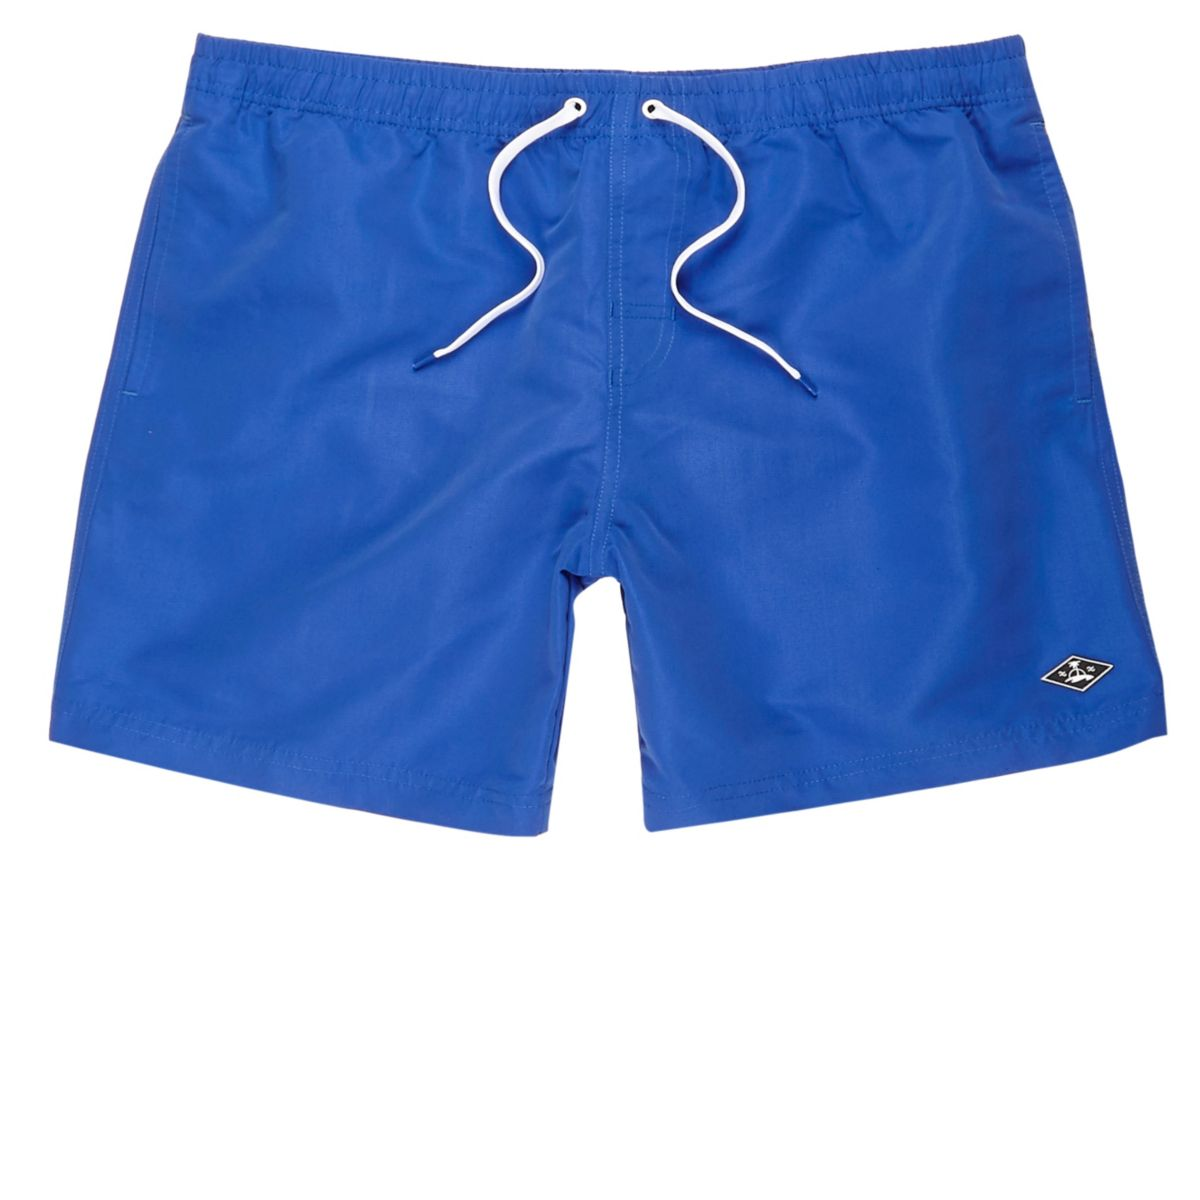 Cobalt blue swim shorts